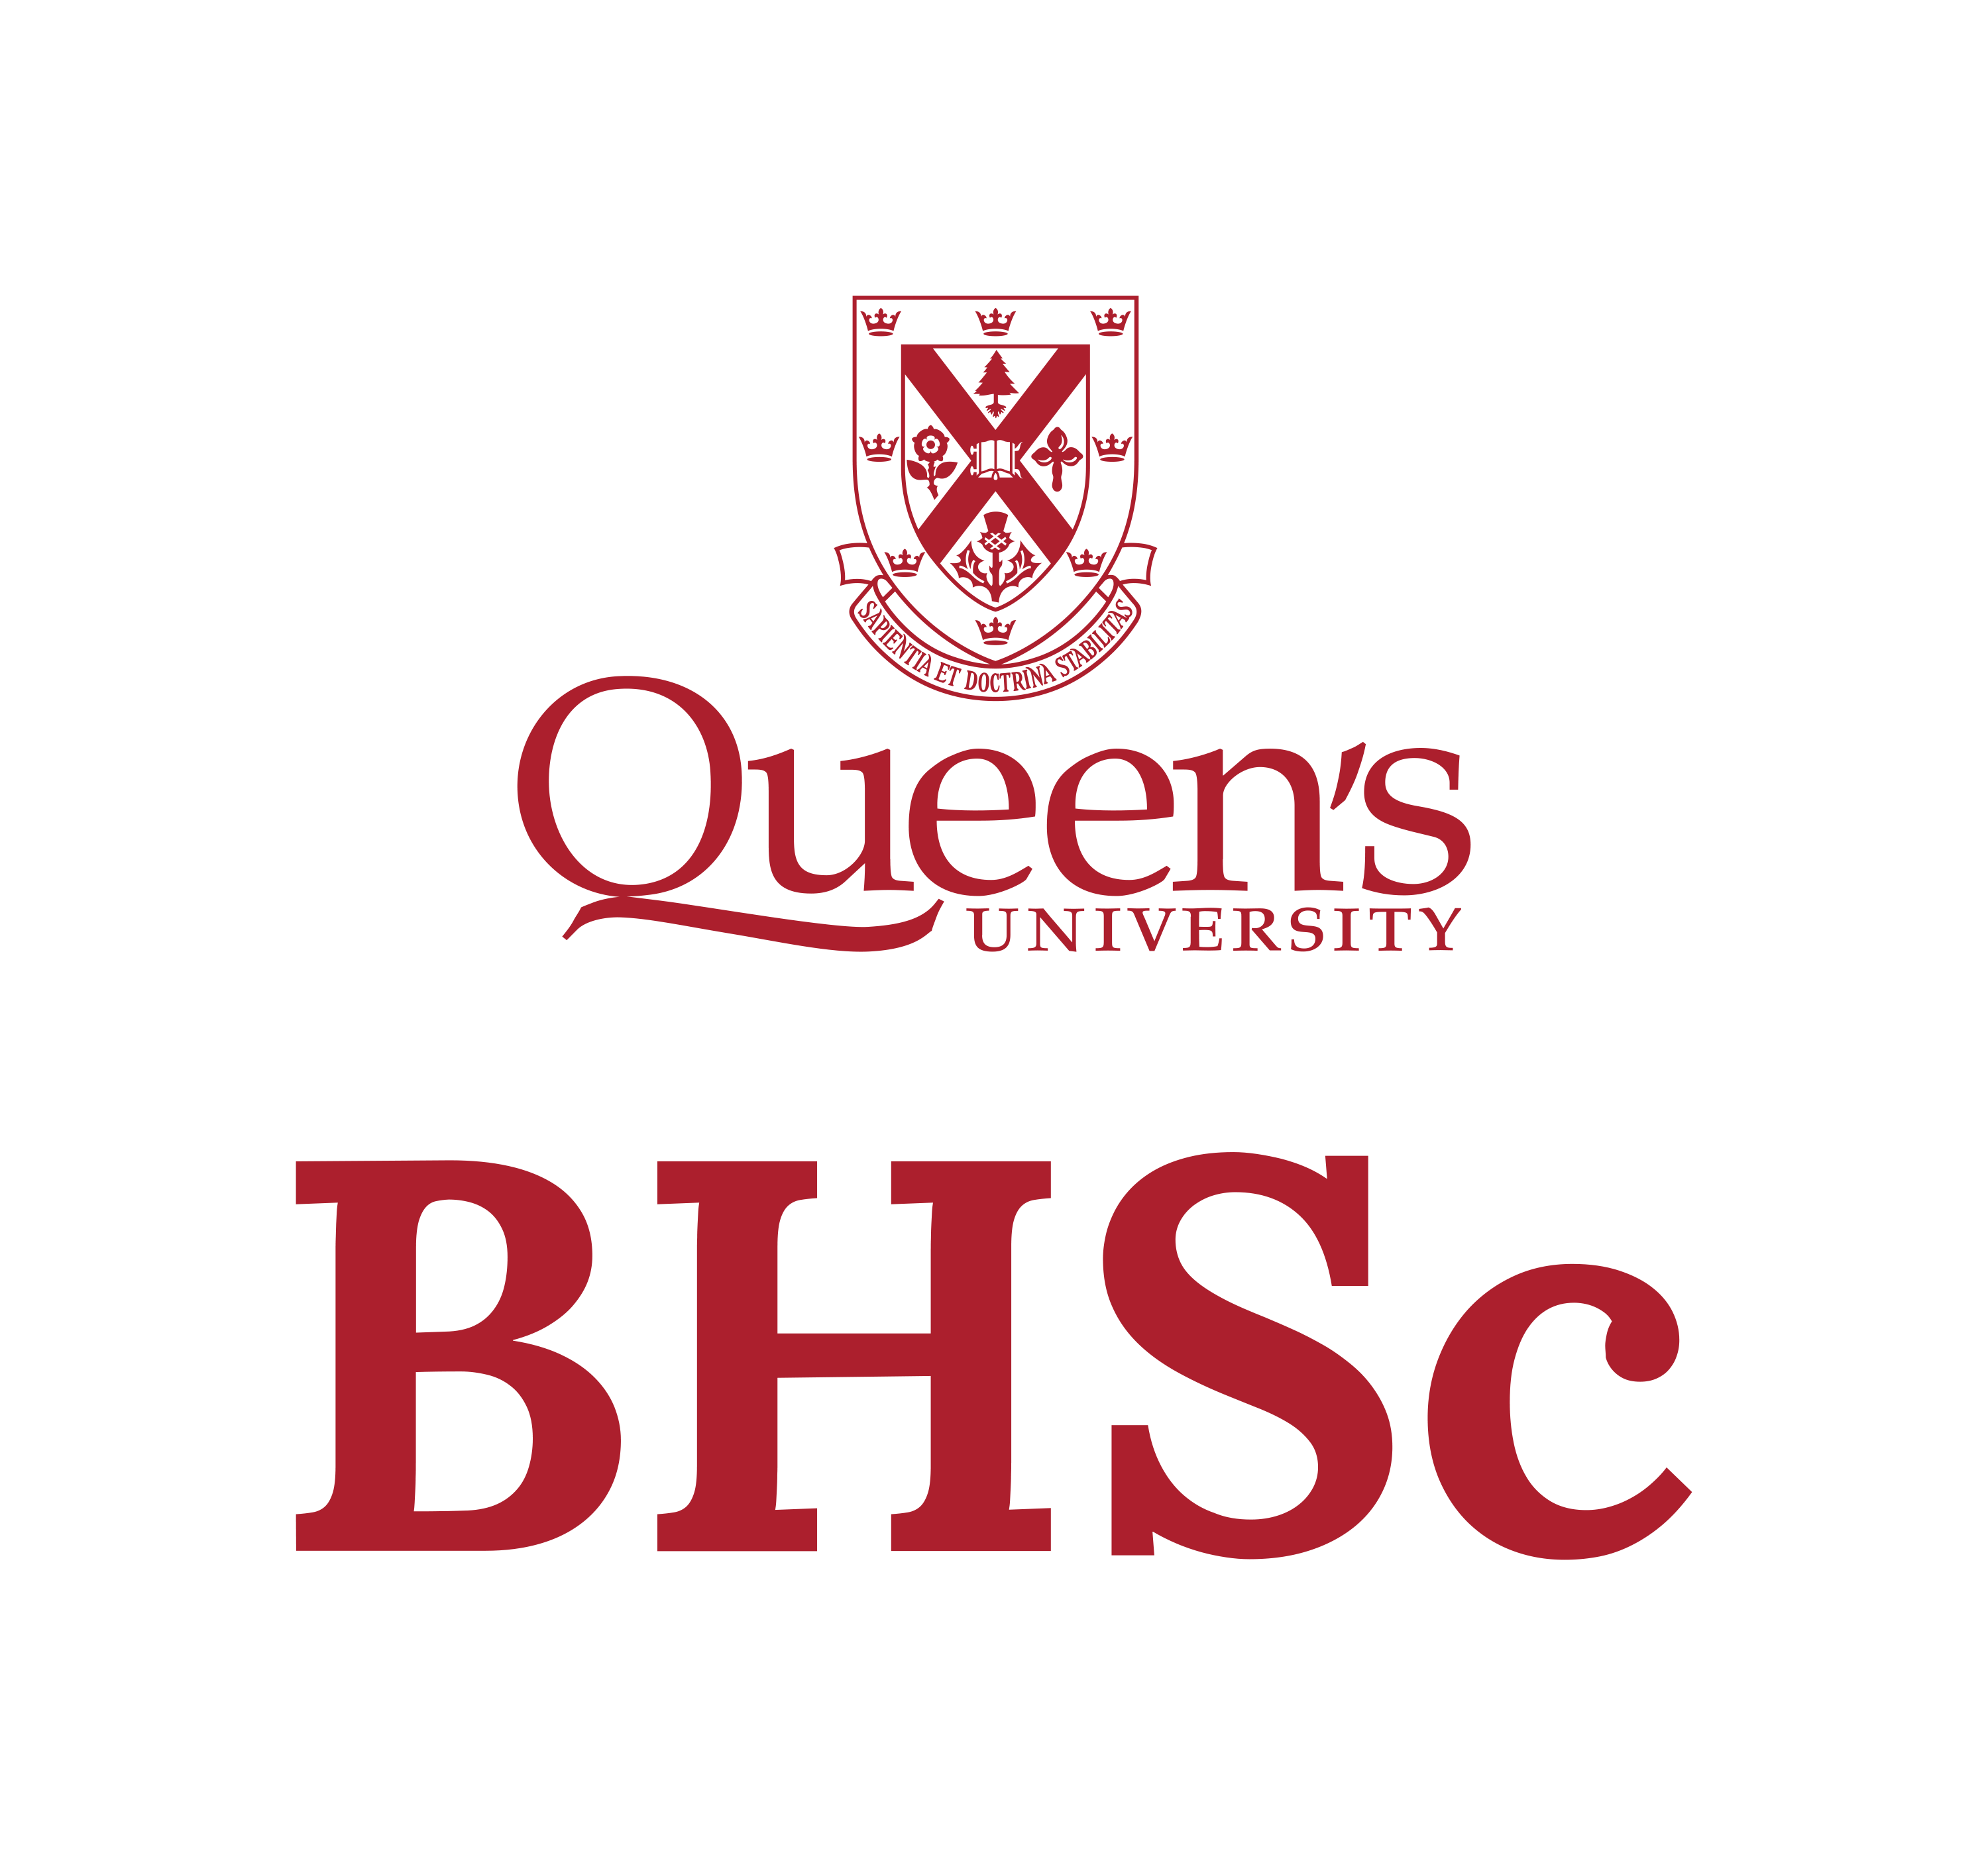 Bhsc queens brand red